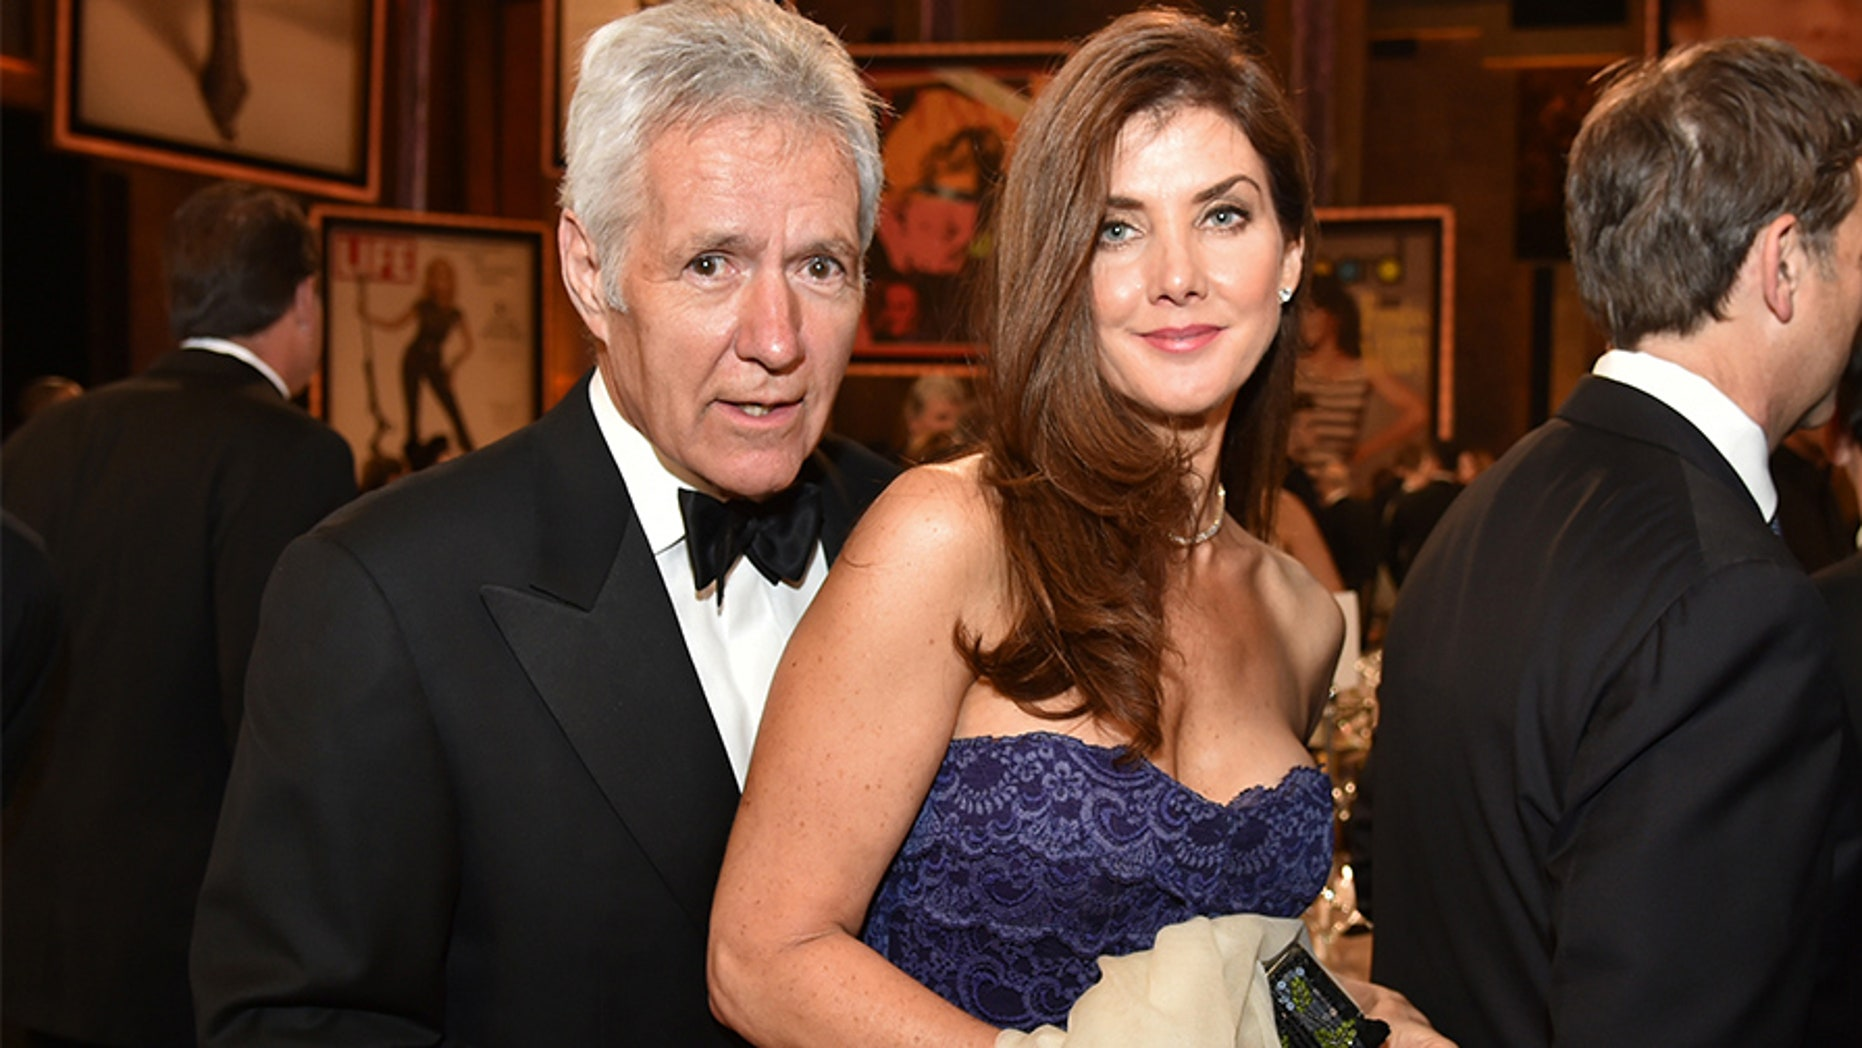 TV personality Alex Trebek (L) and his wife Jean attend the 2014 AFI Life Achievement Award: A Tribute to Jane Fonda at the Dolby Theatre on June 5, 2014 in Hollywood, California.